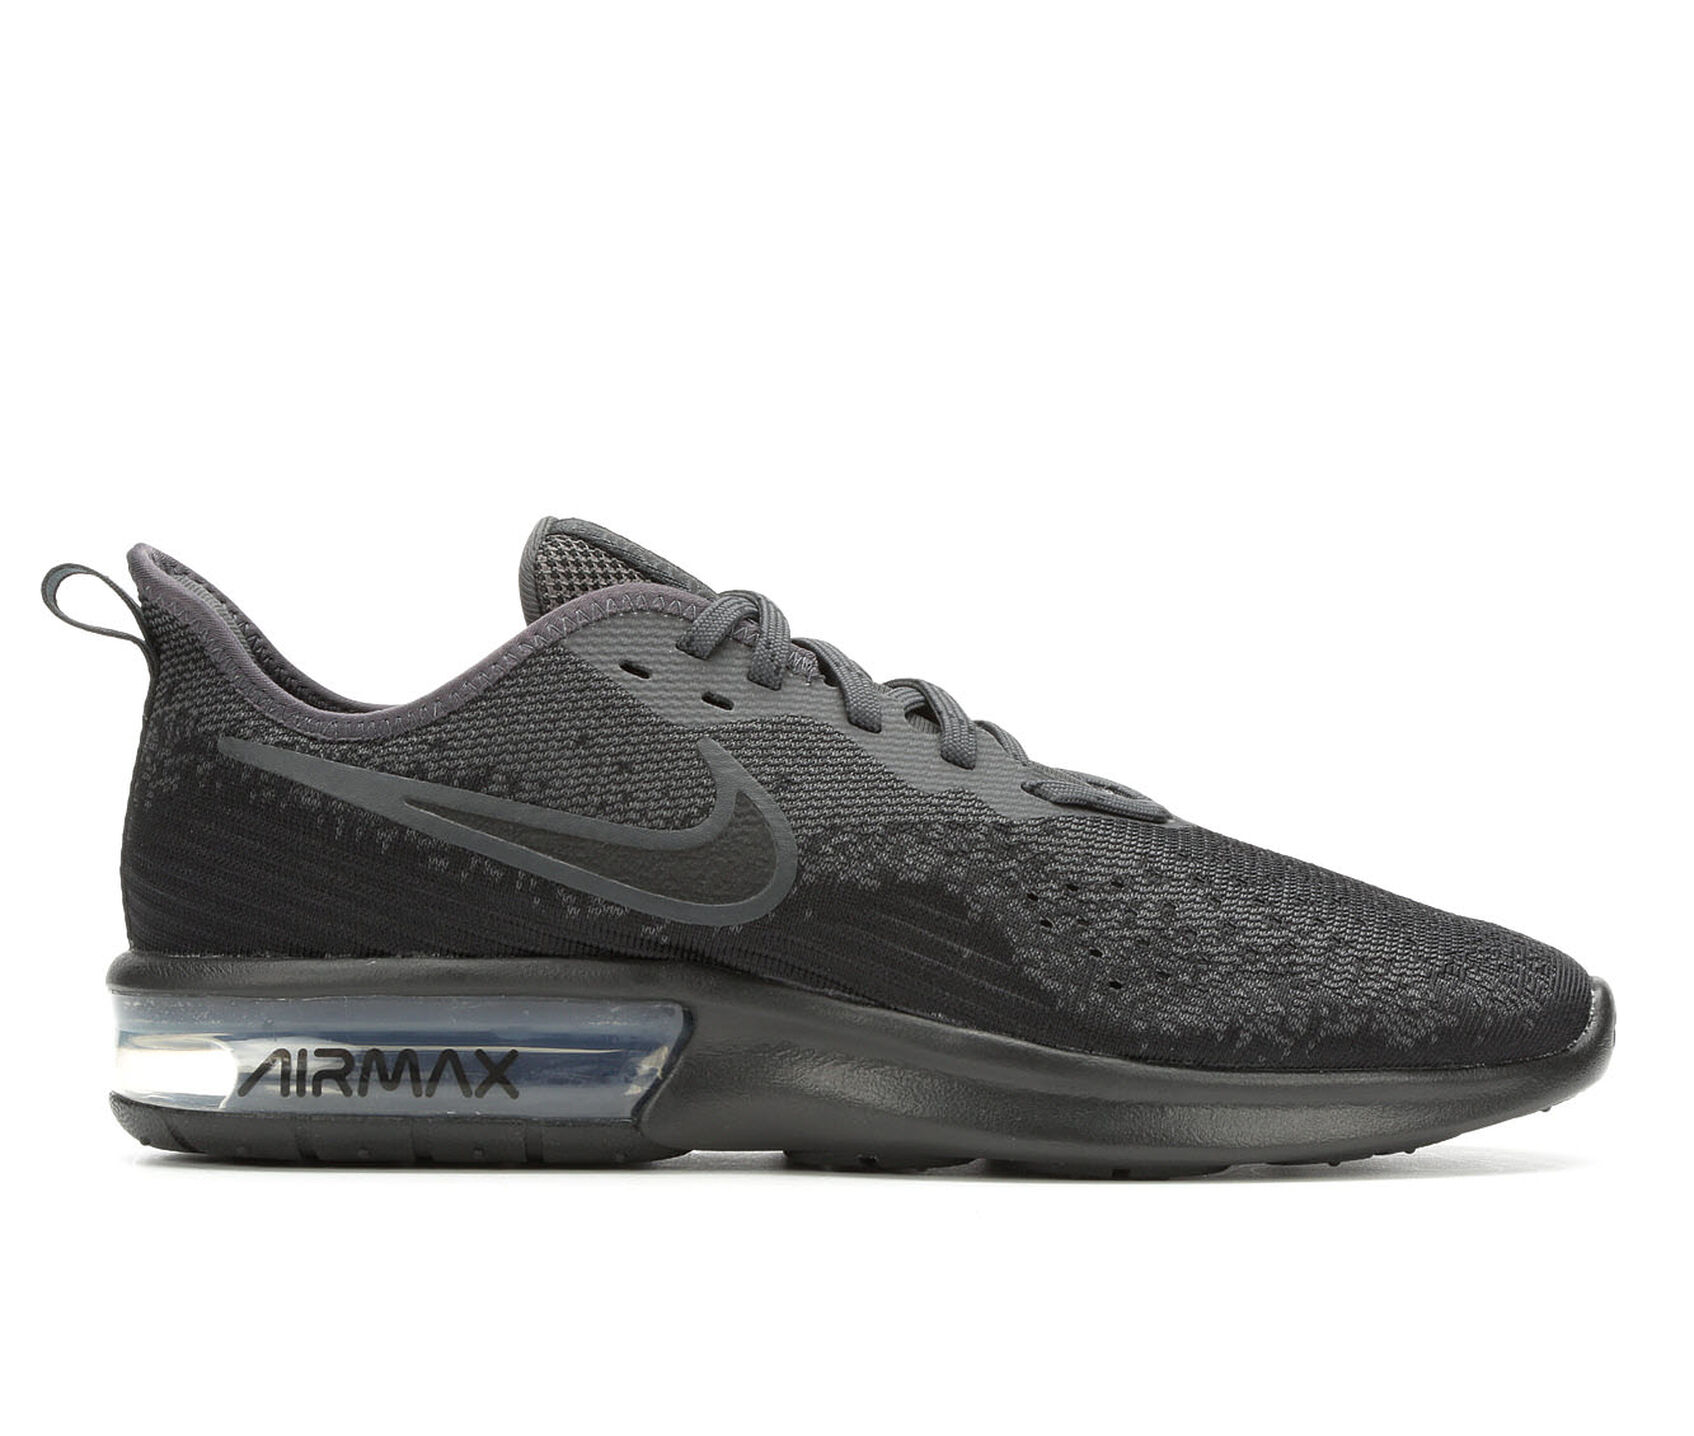 62819099989 ... promo code c59f7 5016b Mens Nike Air Max Sequent 4 Running Shoes ...